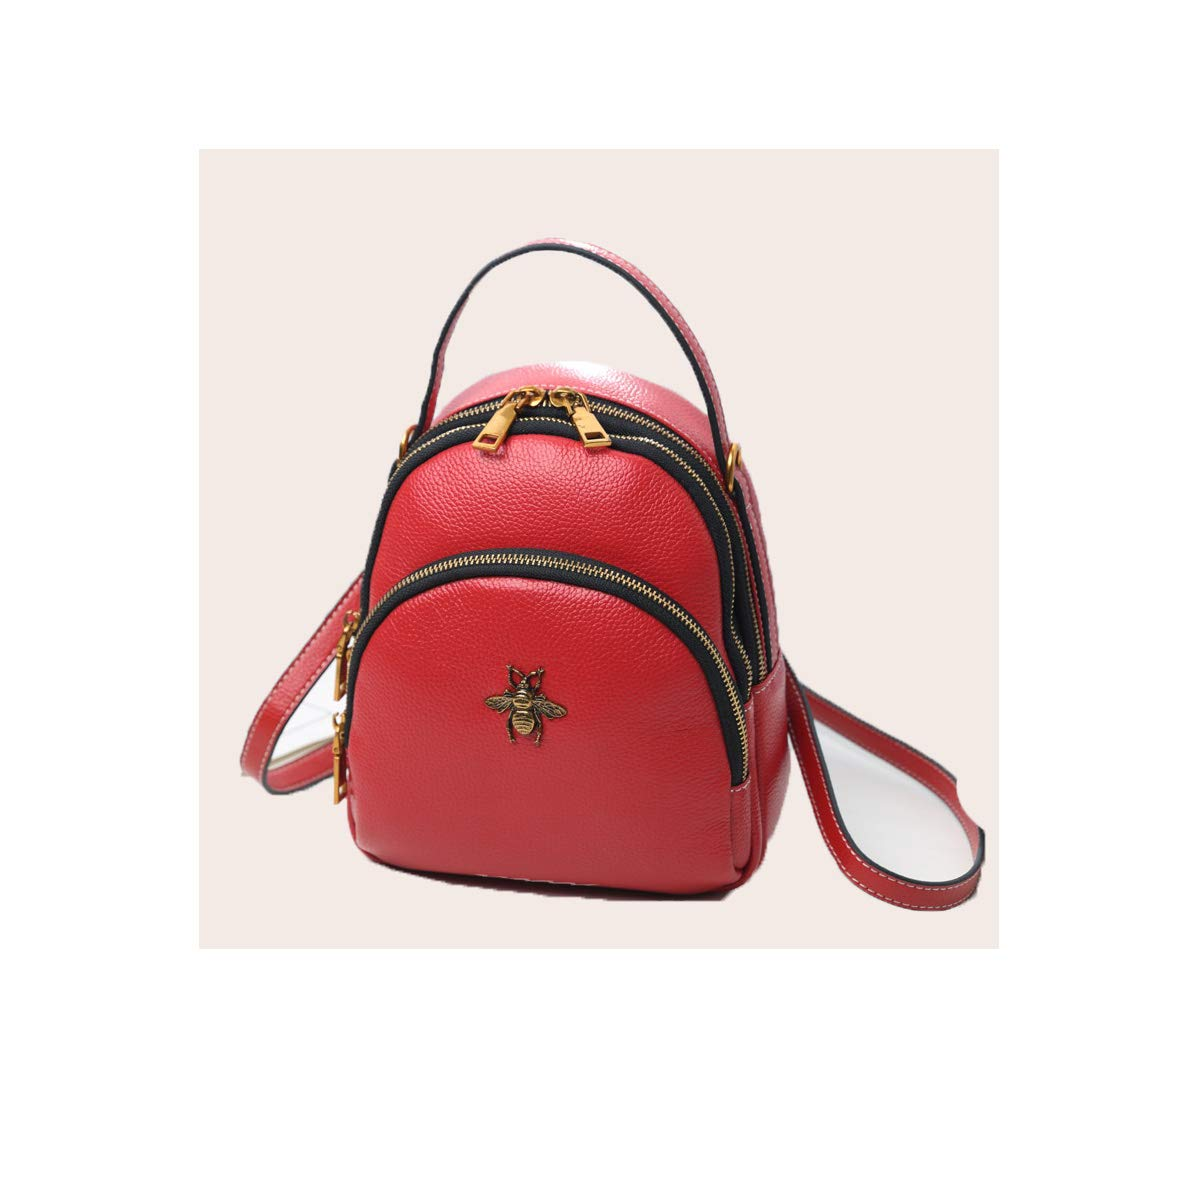 Cowhide Latest Models Mini Fashion 8haowenju Girls Multi-Purpose Backpack for Everyday Travel//Outdoor//Travel//School//Work//Fashion//Leisure Black//red//Green